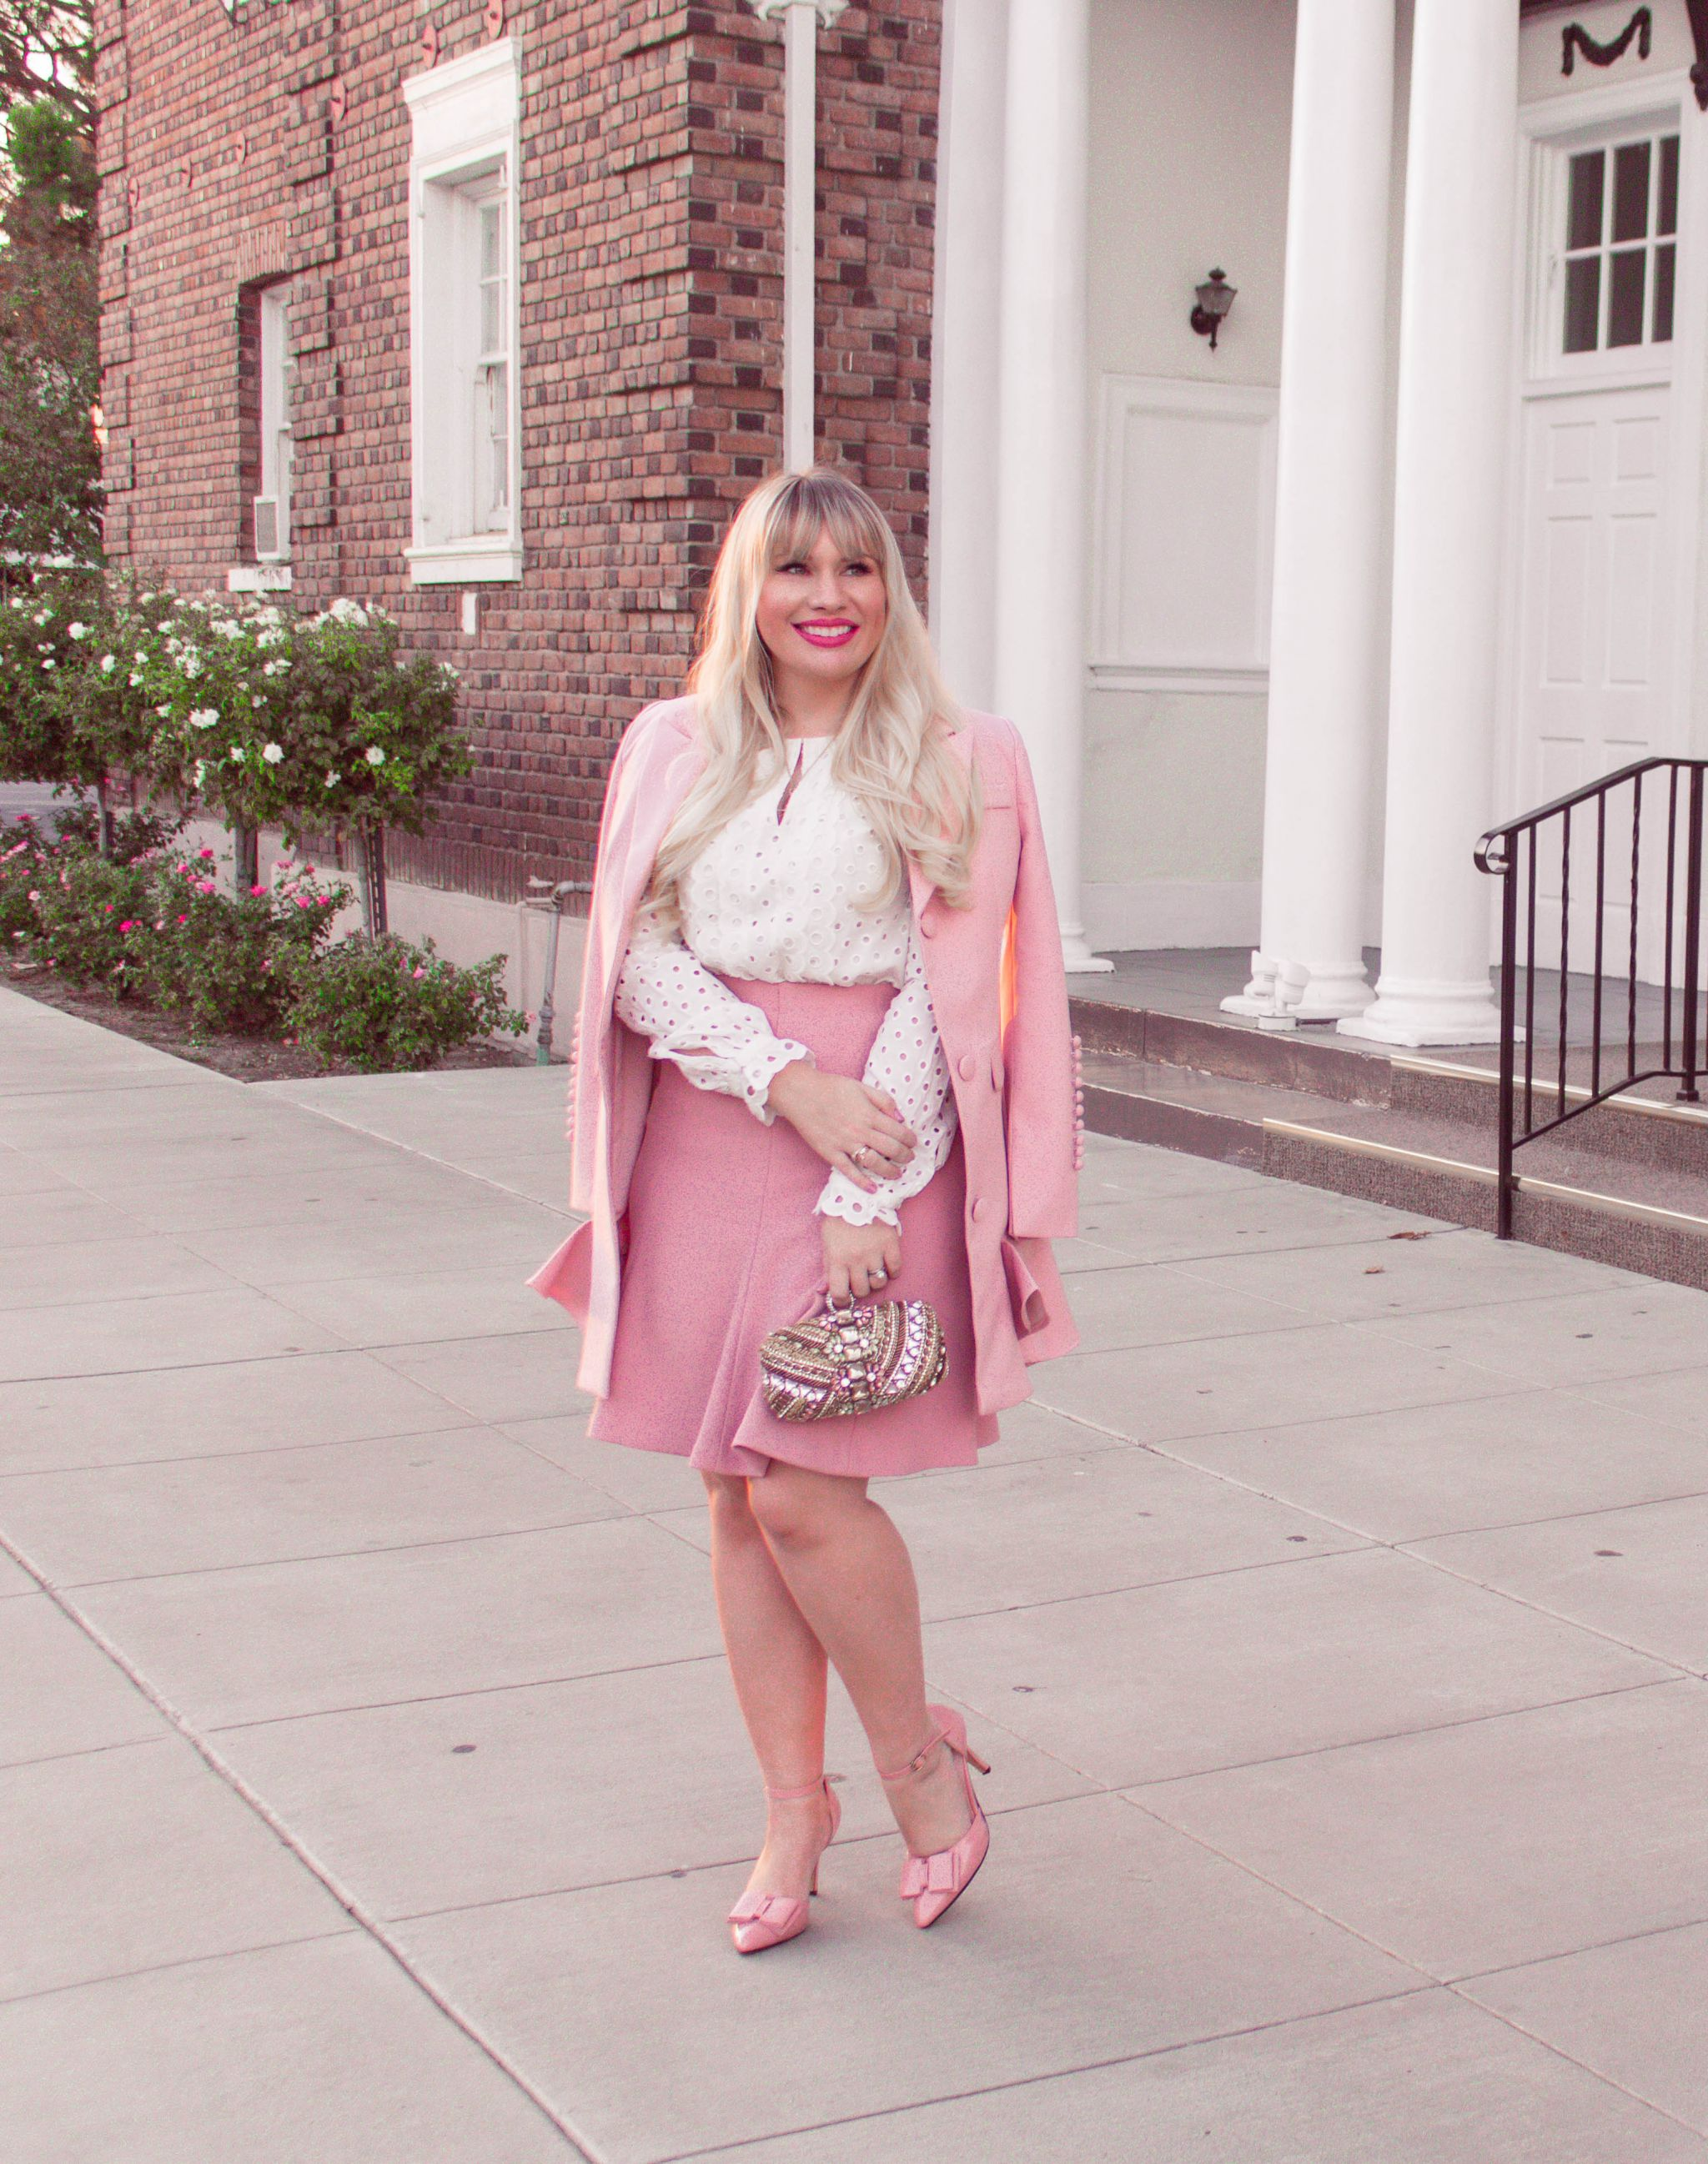 Fashion blogger Elizabeth Hugen of Lizzie in Lace shares 5 tips to make a pink outfit look sophisticated along with this feminine pink outfit idea